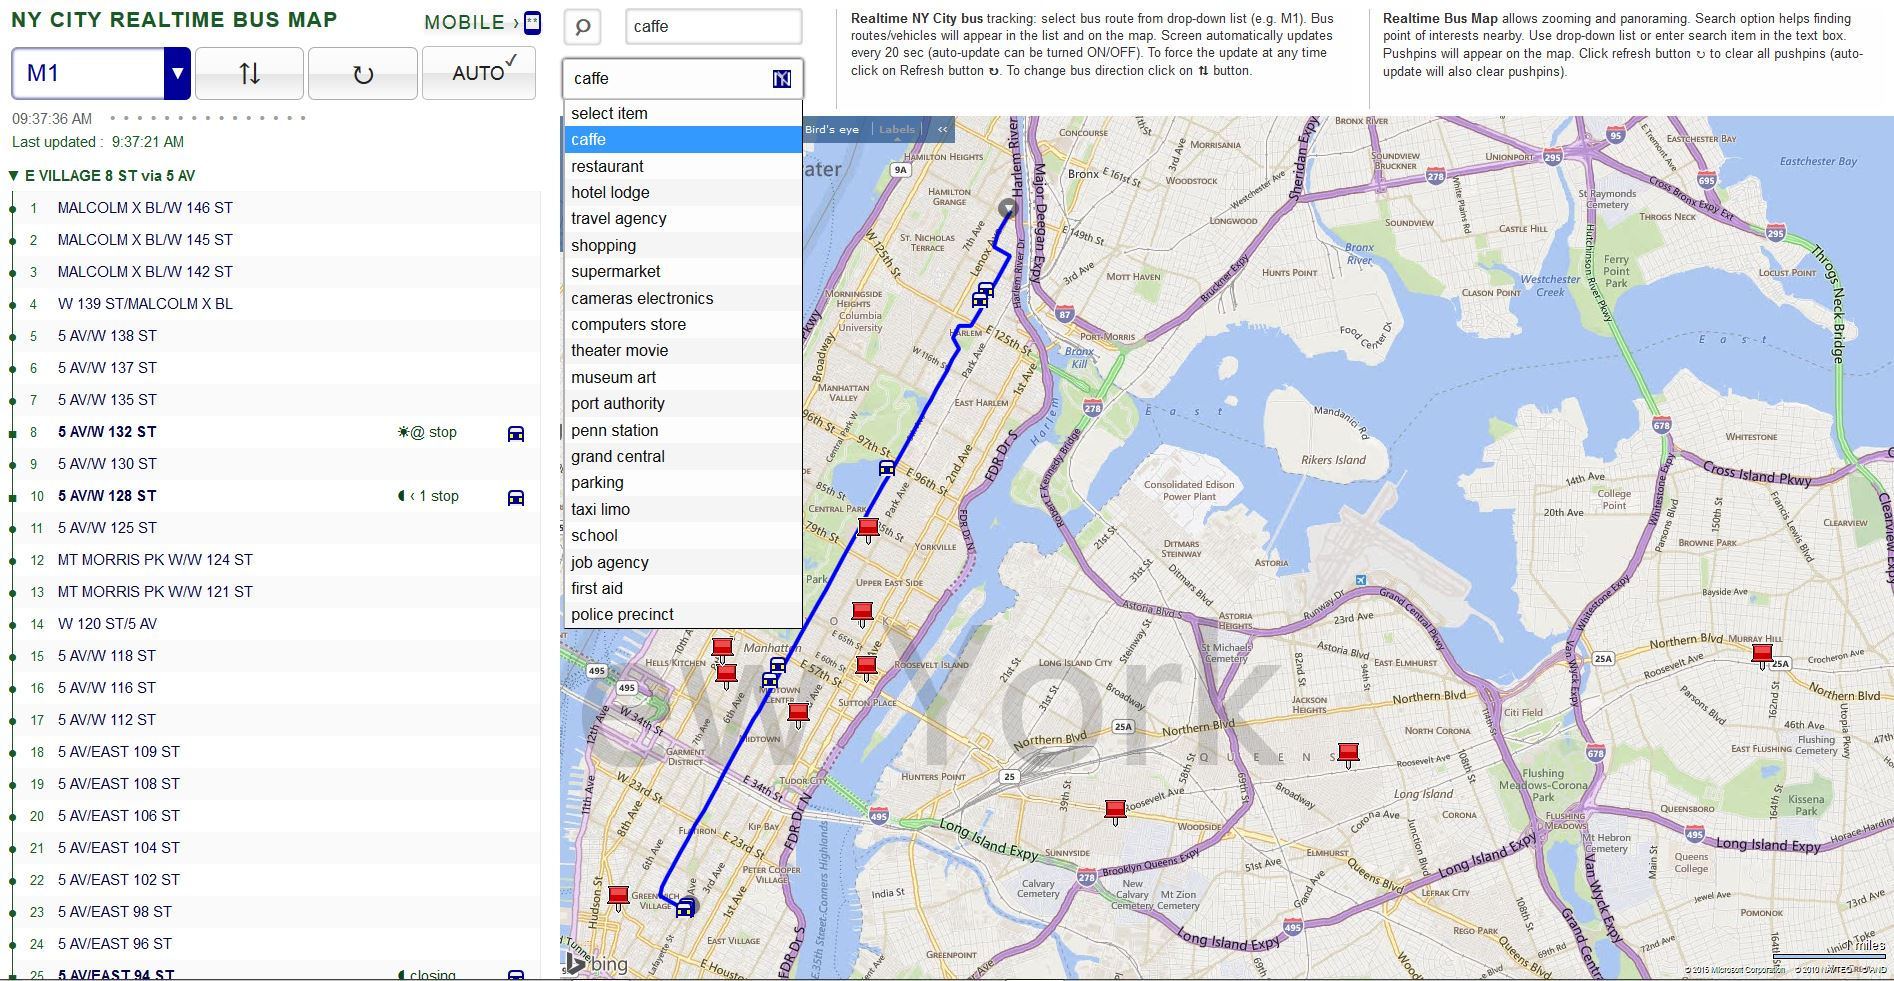 M1 Bus Route New York Fig 1b NY City real time bus map  tracking cPtOJVeb